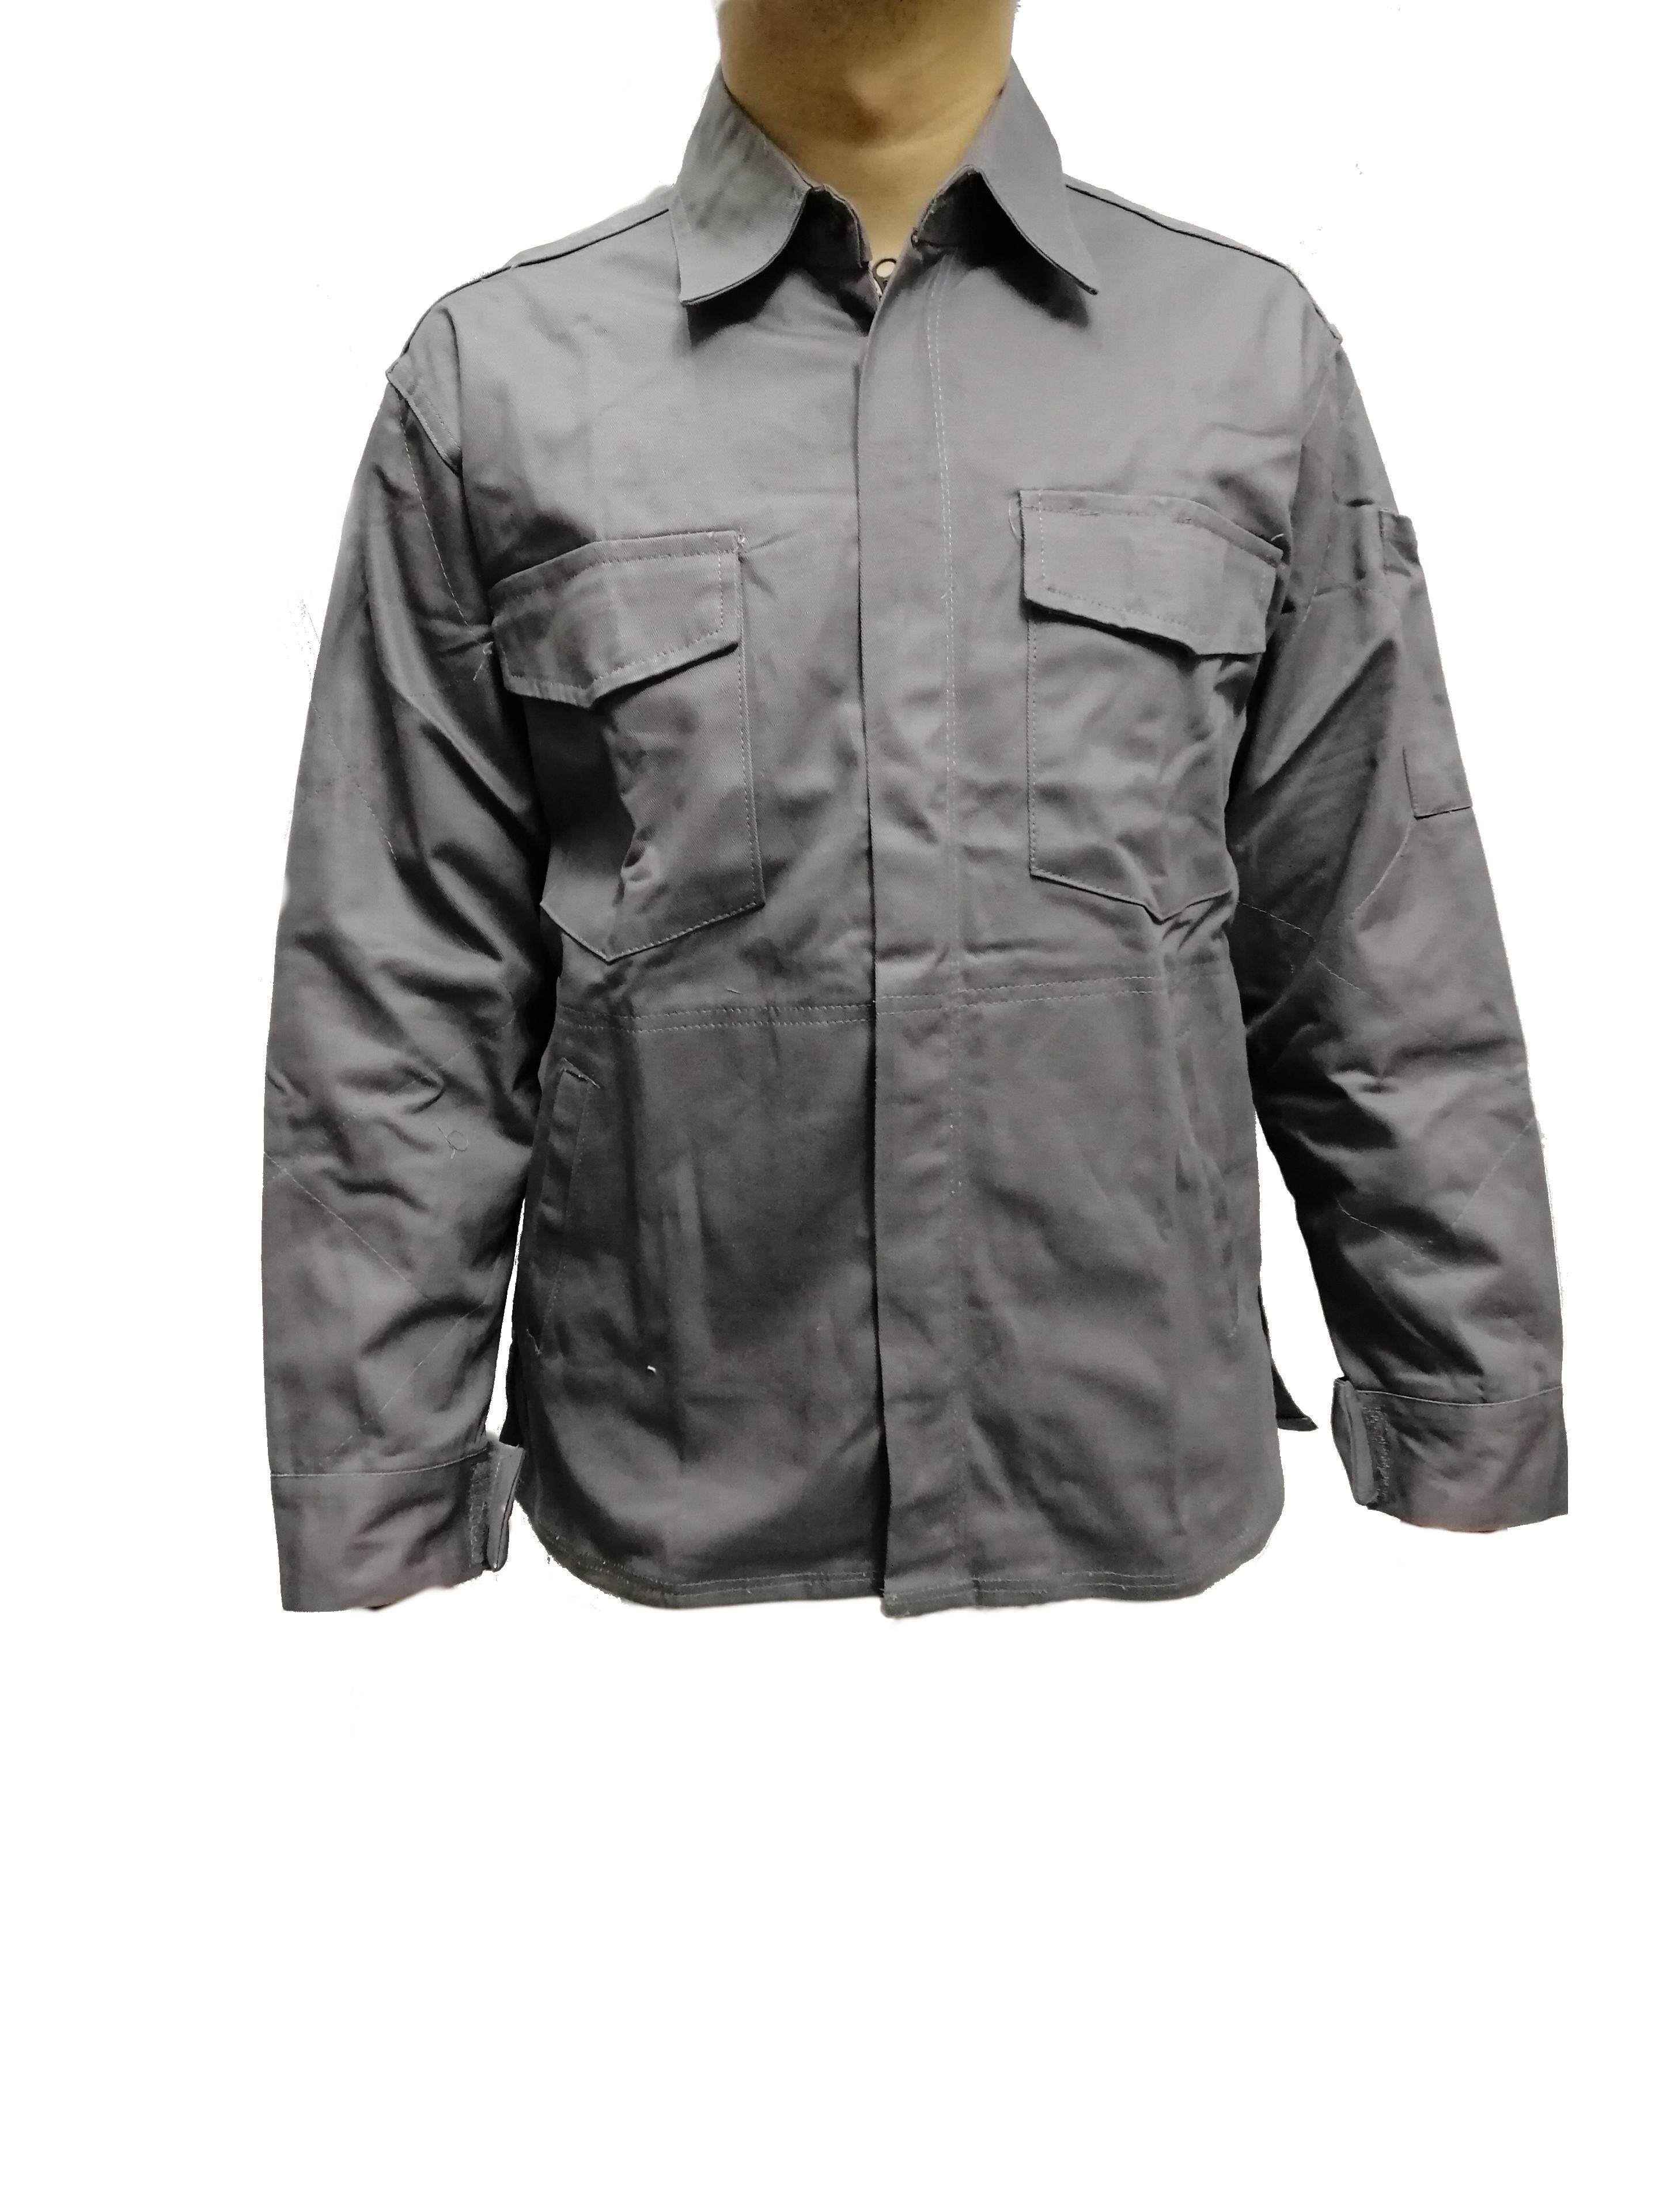 Work zip jacket/ plantation jacket/ Welding Coat Heat/Flame Resistant Heavy Duty Anti-scald Welder Clothing